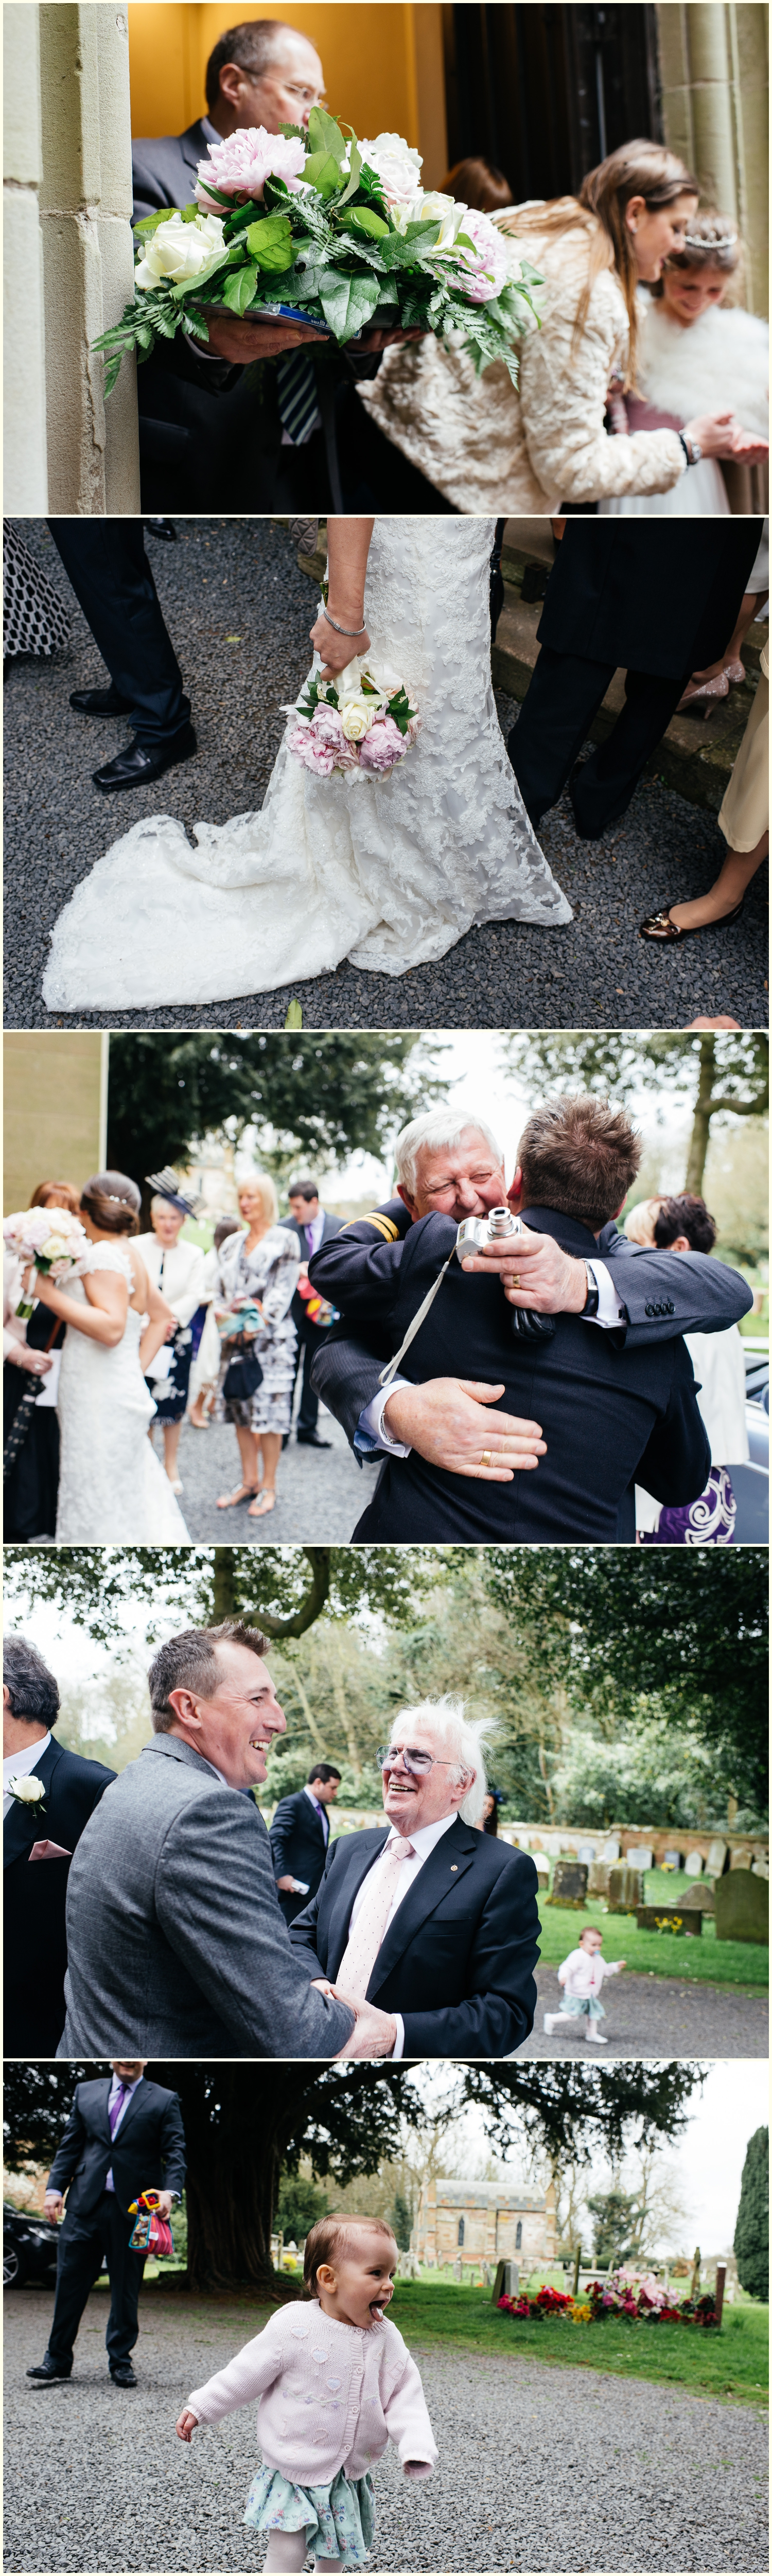 Nikki_Cooper_Photography_Rich&Sarah_Wedding_Photos_Crown_and_Sandys_Ombersley_Worcester_1027.jpg